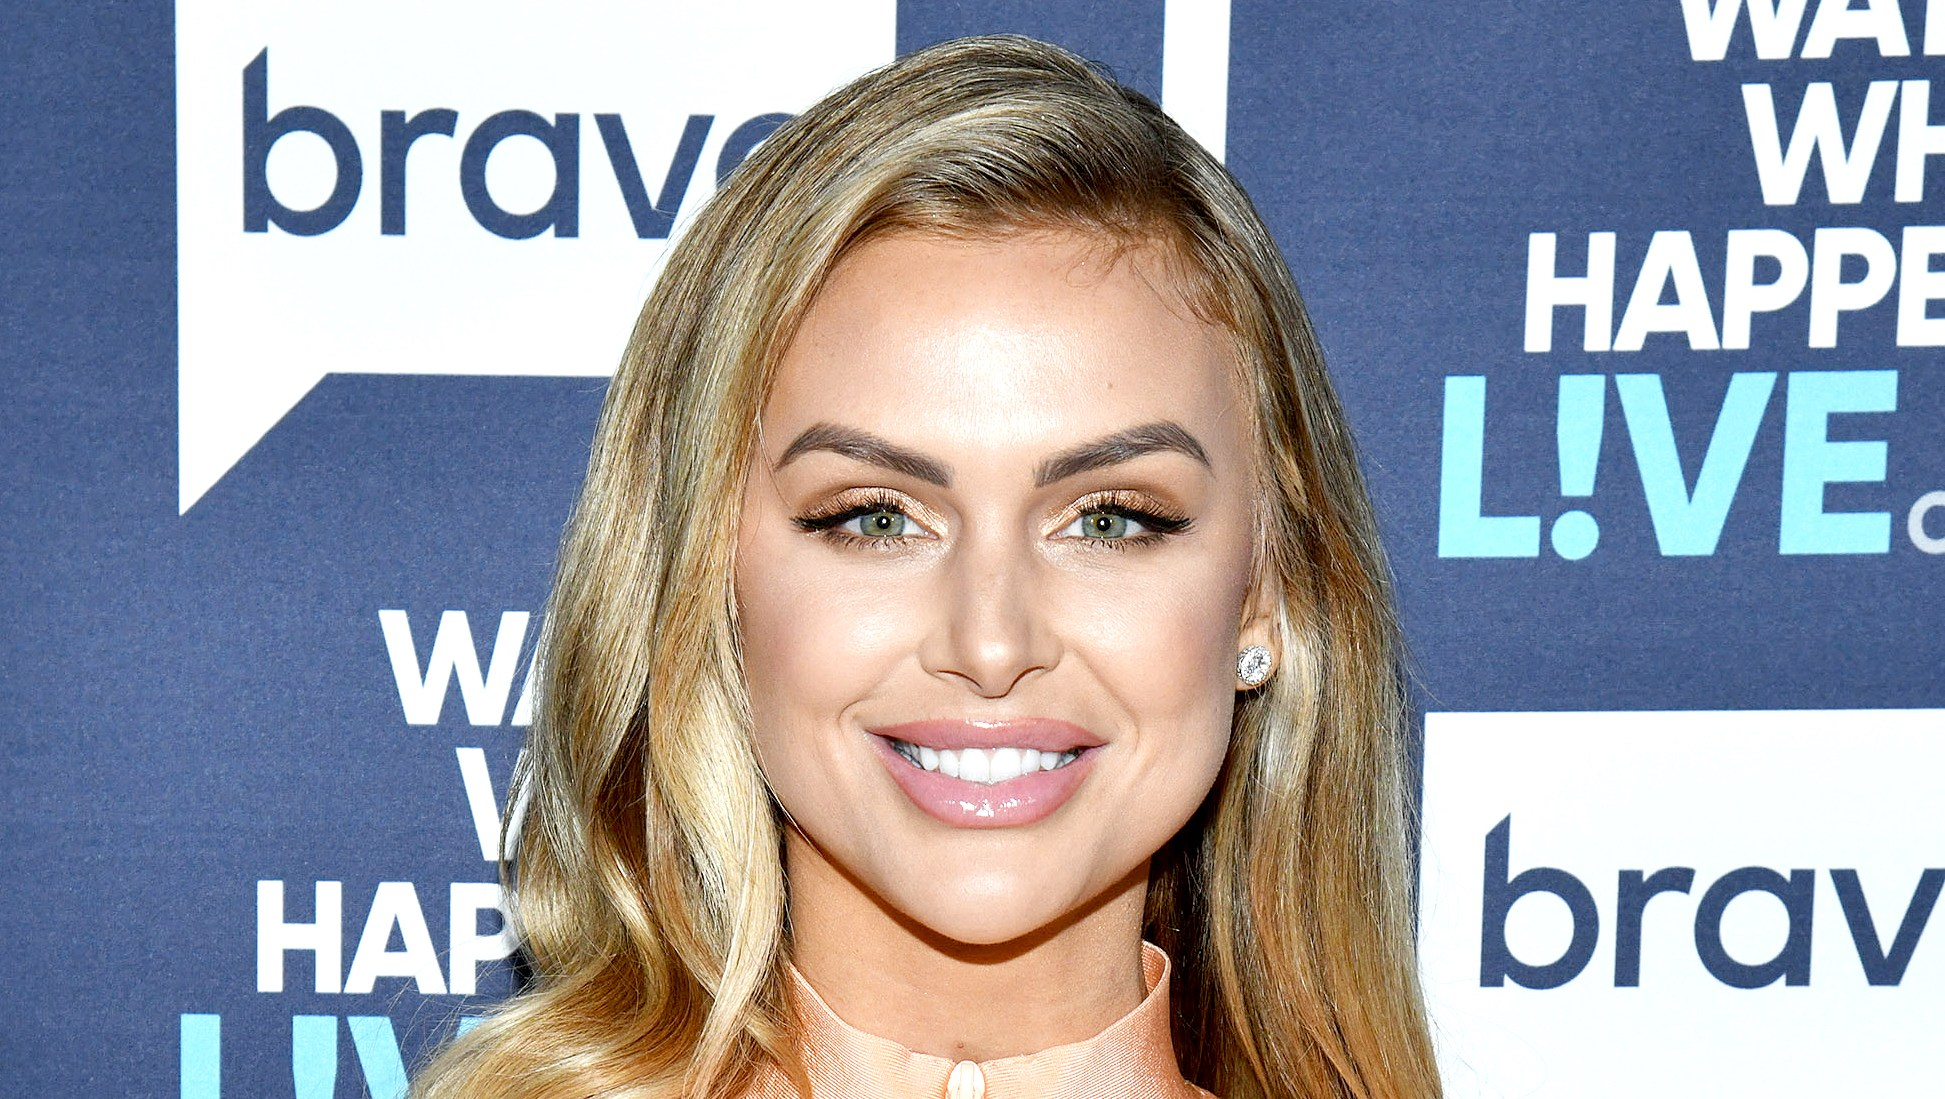 'Vanderpump Rules' Star Lala Kent Celebrates 6 Months of Sobriety: 'I'm Feeling Blessed'